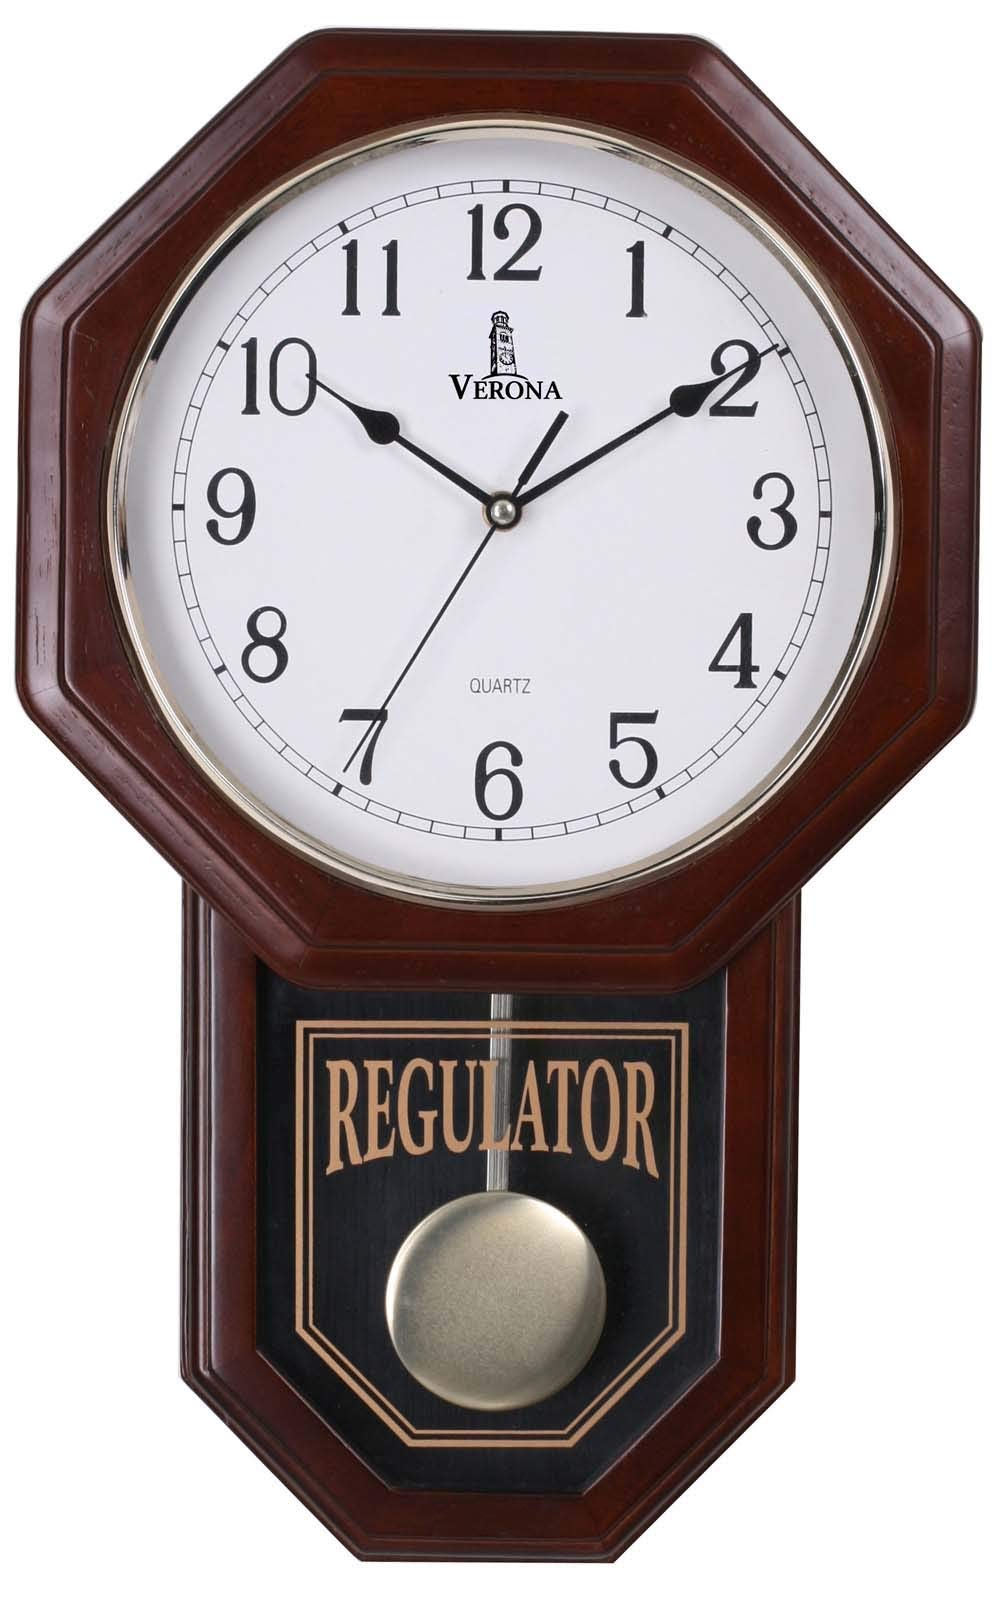 Best Pendulum Wall Clock, Silent Decorative Wood Clock with Swinging Pendulum, Battery Operated, Schoolhouse Regulator Wooden Design, For Living Room, Bathroom, Kitchen & Home Décor, 18'' x 11.25""